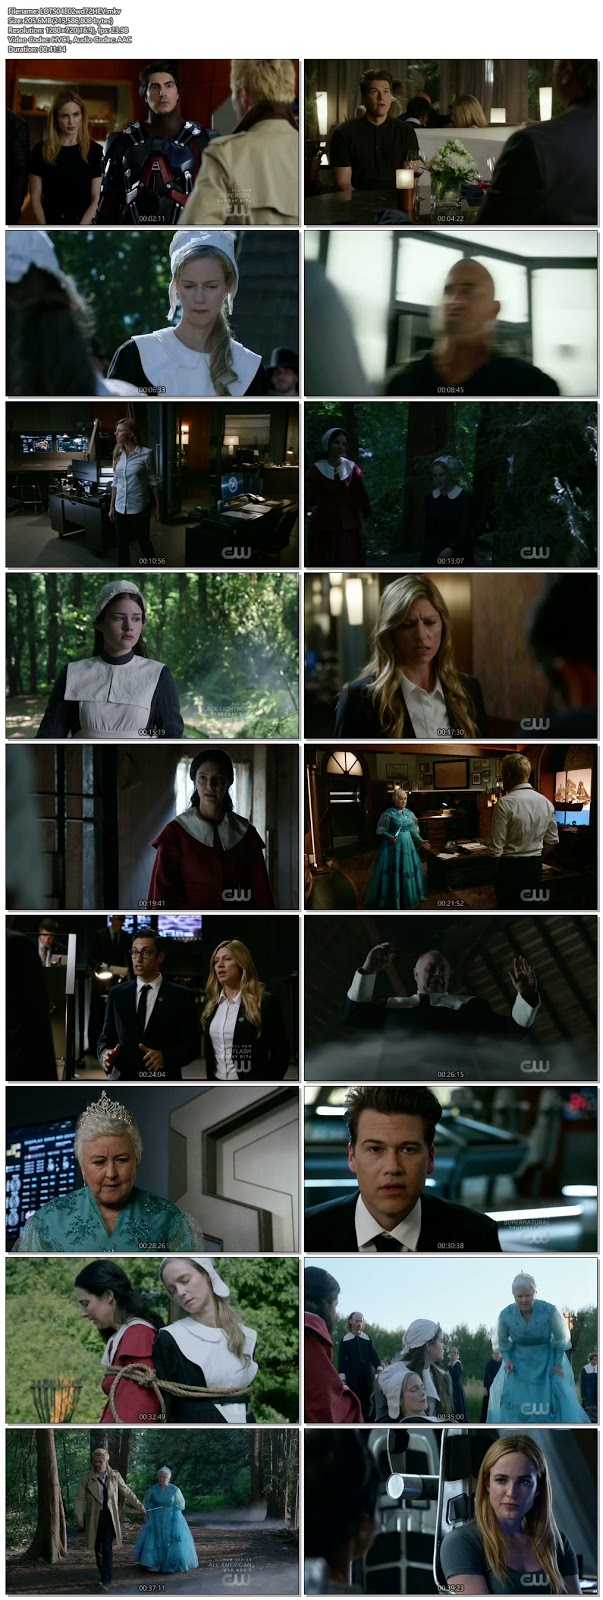 Legends of Tomorrow S04 Episode 02 720p HDTV 200MB ESub HEVC, hollwood tv show hevc x265 hdrip 250mb 270mb free download or watch online at world4ufree.vip